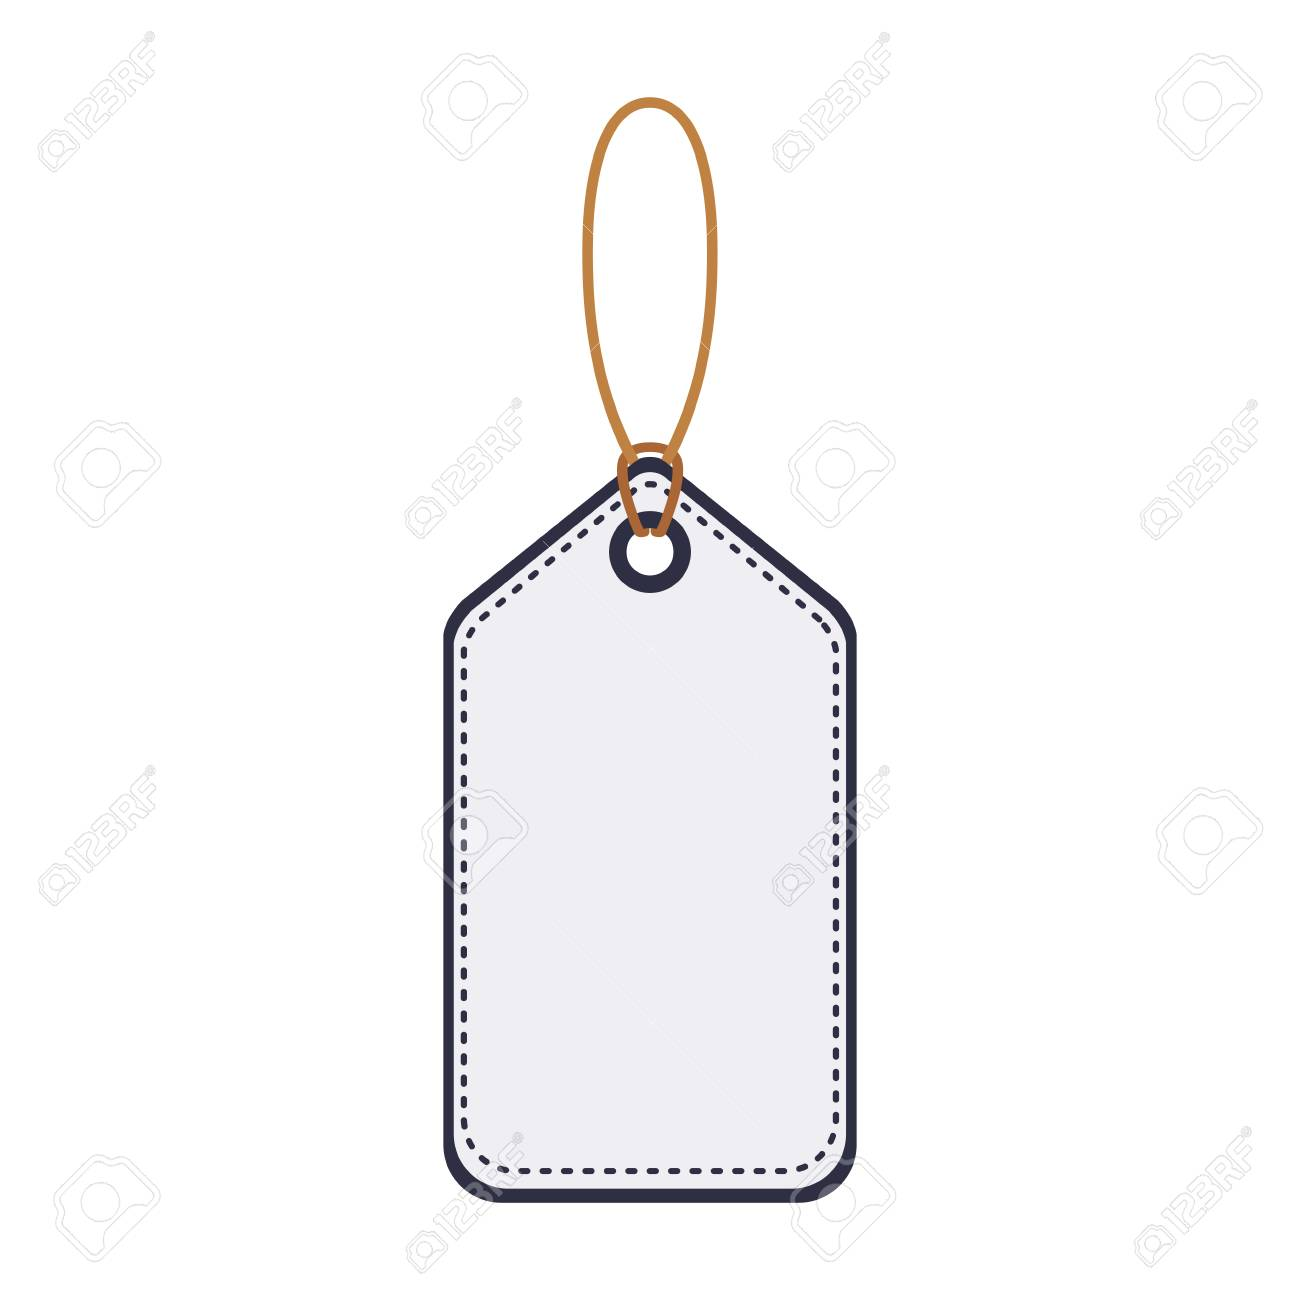 silhouette of price hanging tag template icon over white background